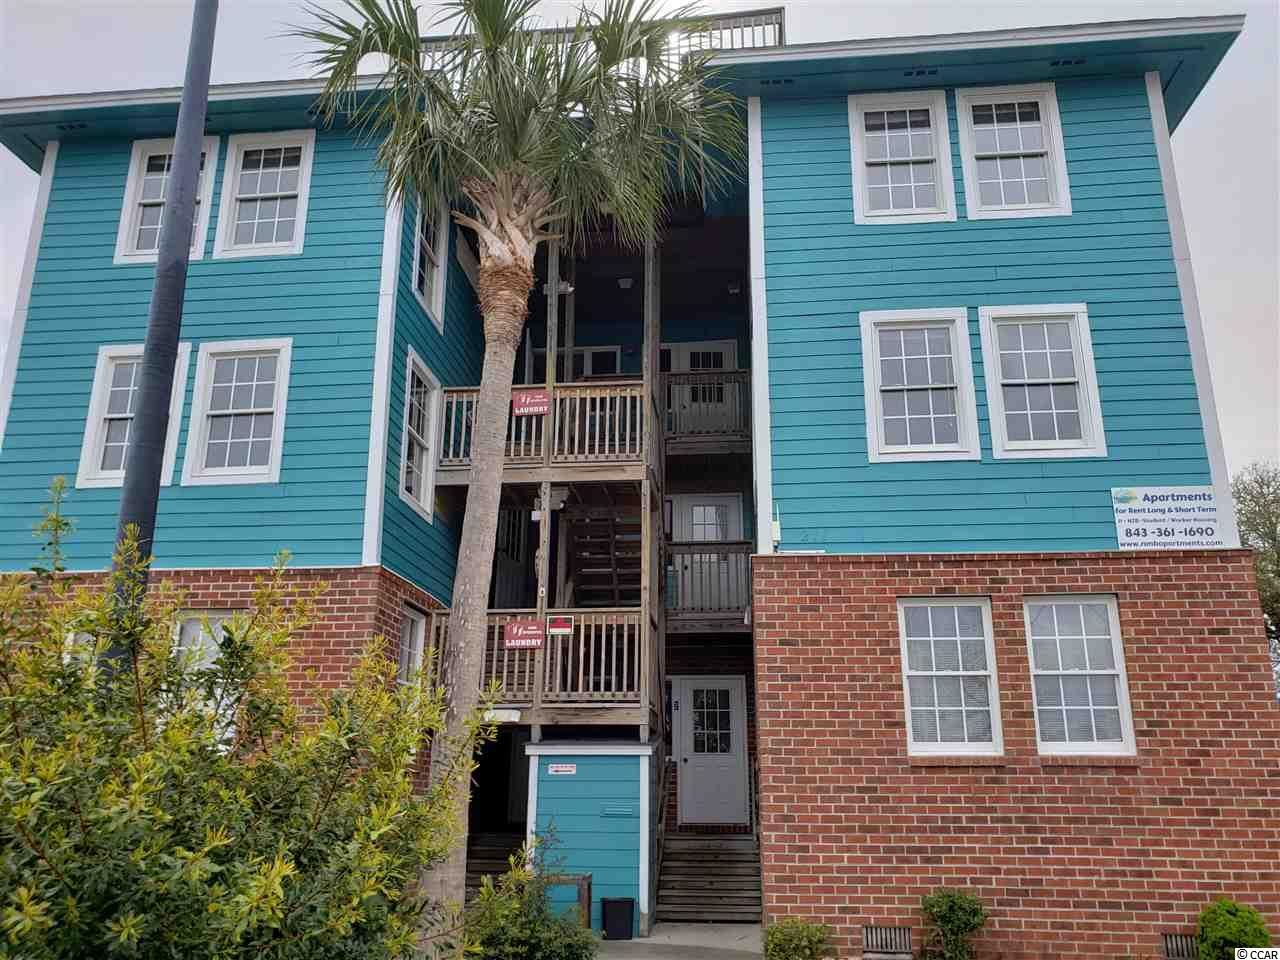 211 1st Ave. S, North Myrtle Beach, SC, 29582 Real Estate For Sale